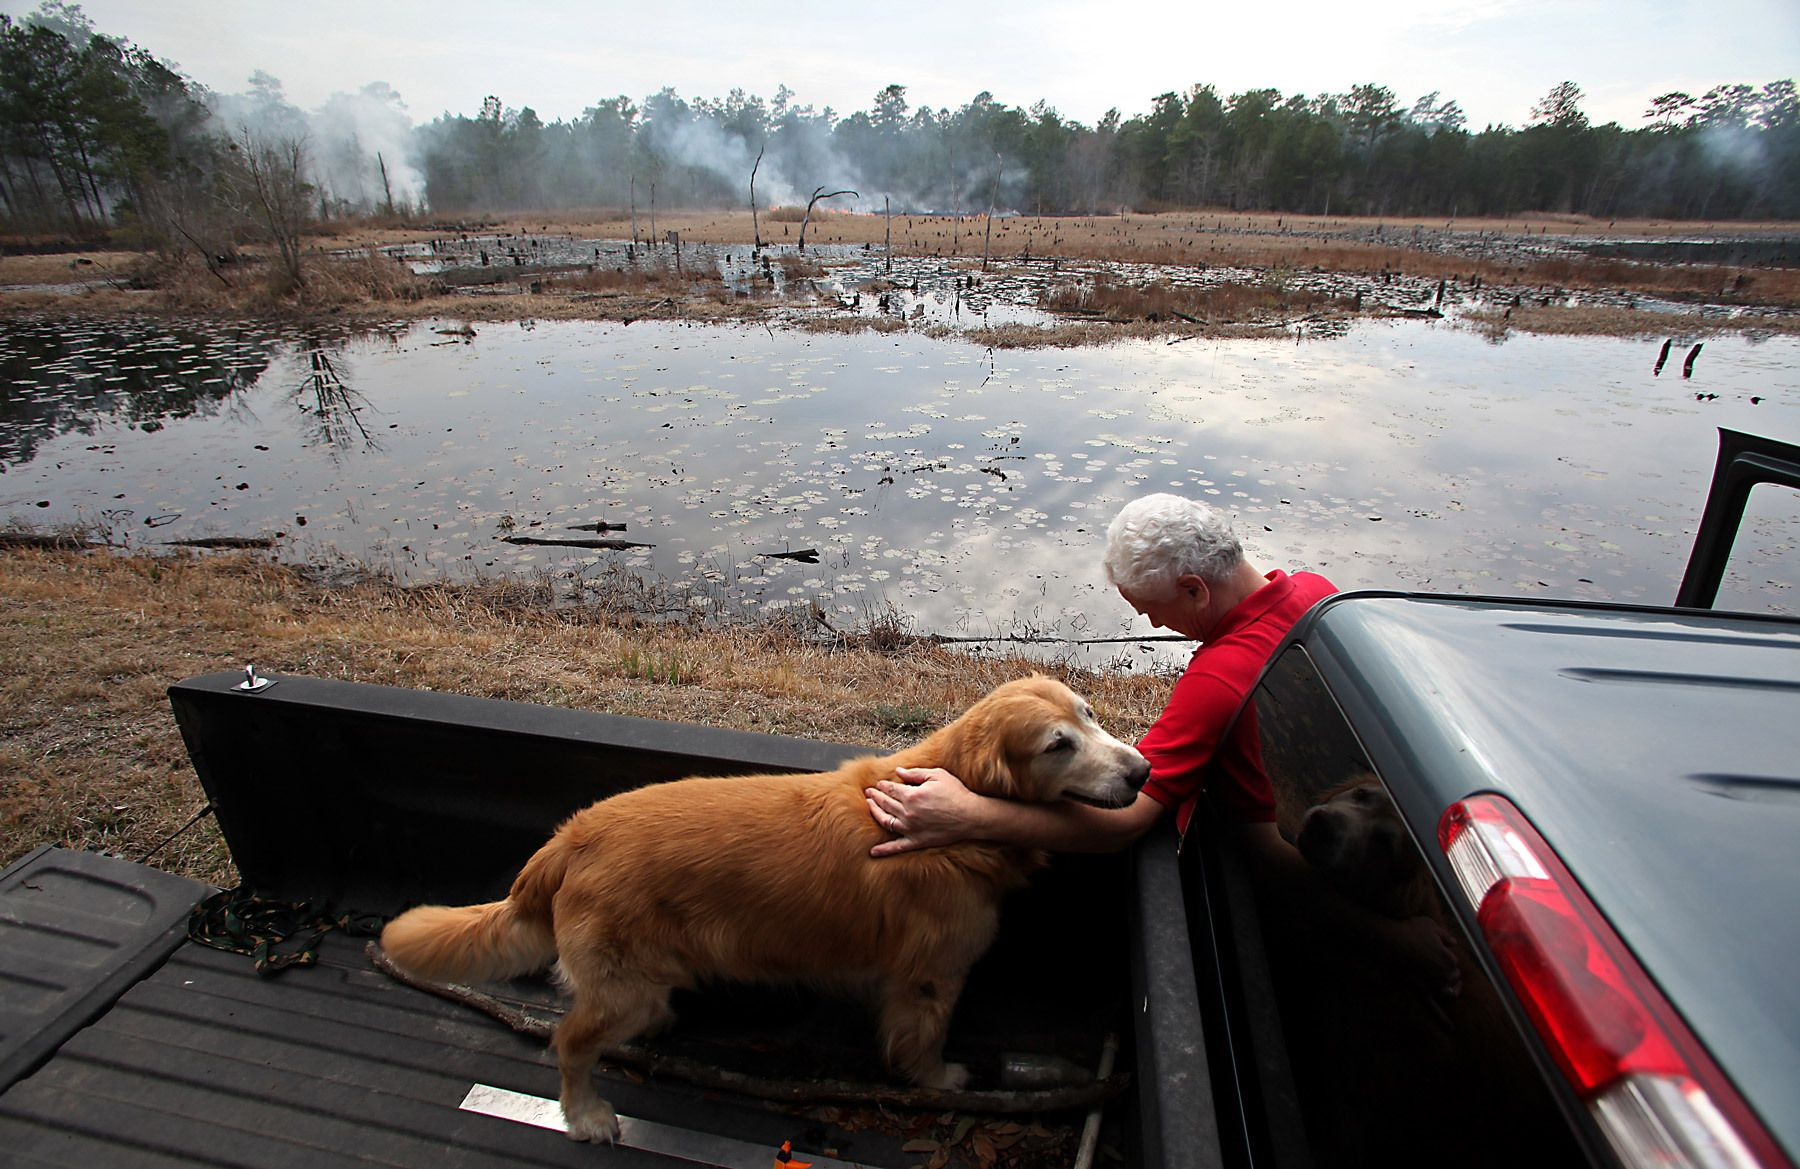 Medway Plantation property manager Bob Hortman and his dog Cooper, watch over a controlled burn at Medway Plantation, February 17, 2012 in Goose Creek, S.C. Hortman has lived and worked on the property for 34 years and oversees the day-to-day operations and maintenance of the plantation. Medway Plantation has 6728 total acres of land with 50 miles of maintained roads. In the South Carolina Lowcountry, more than a half-dozen antebellum plantations, which don't change hands often, are for sale.   REUTERS/Randall Hill